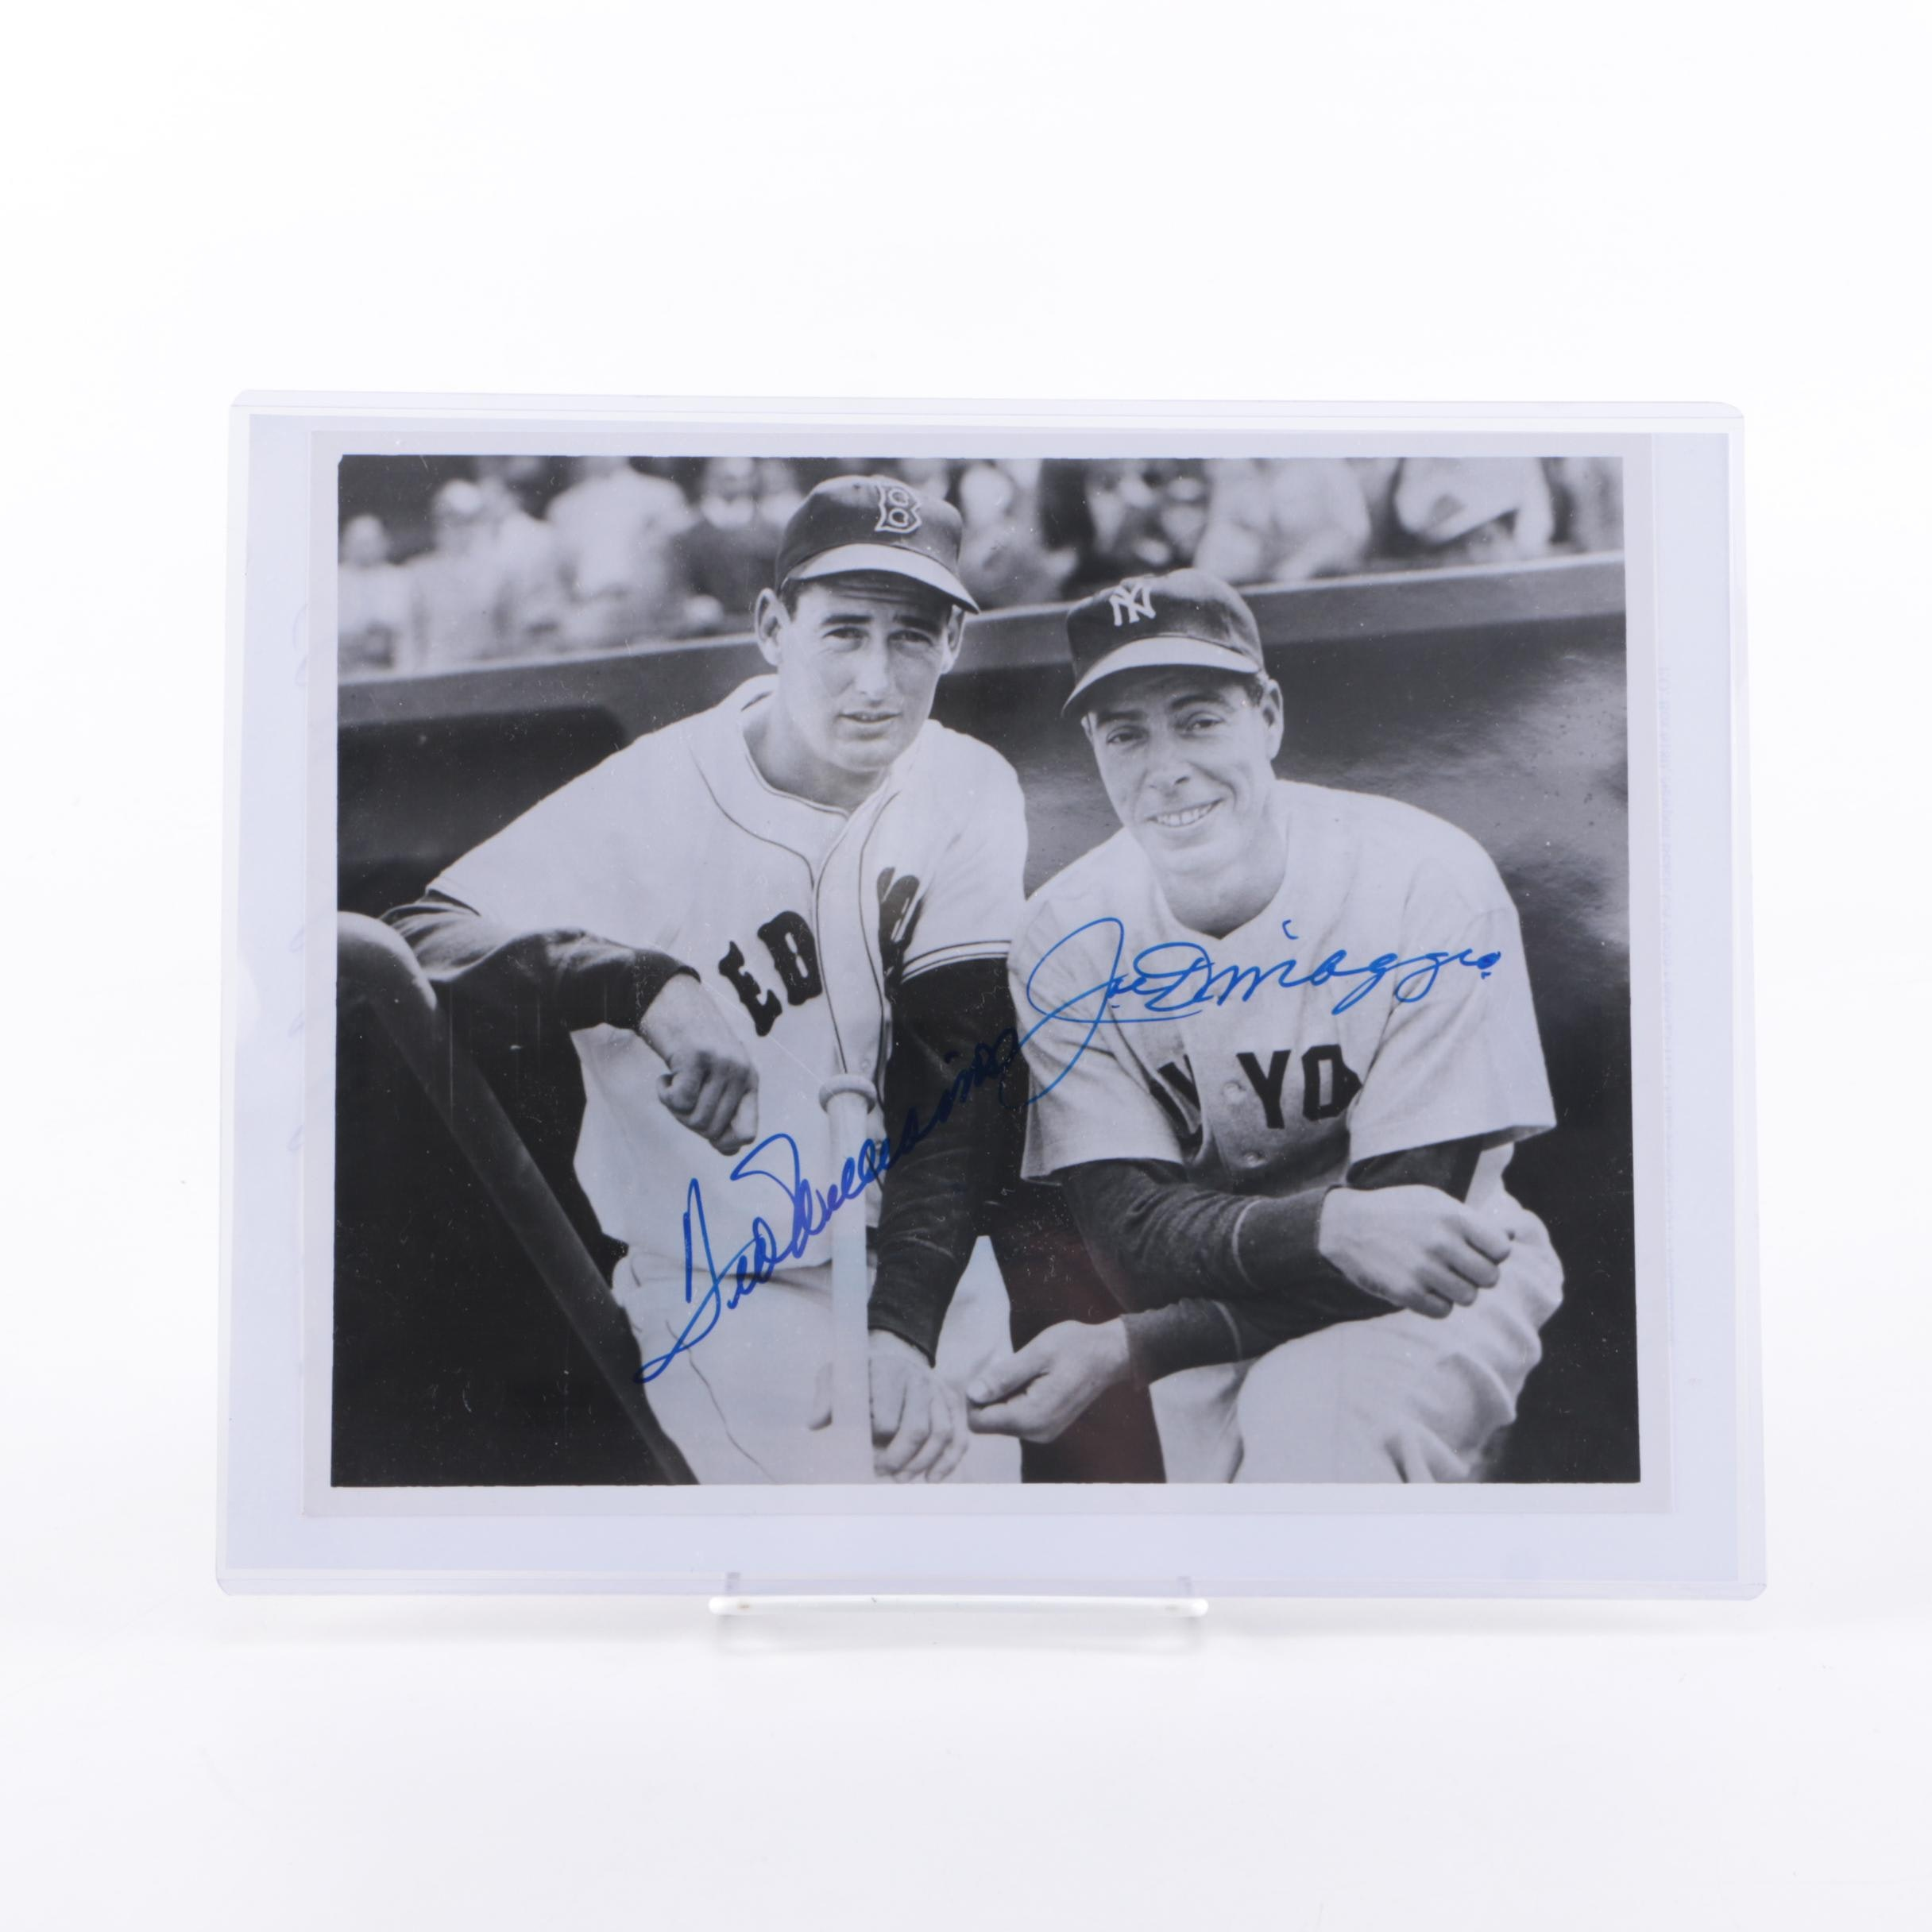 Joe Dimaggio and Ted Williams Signed Photo - COA